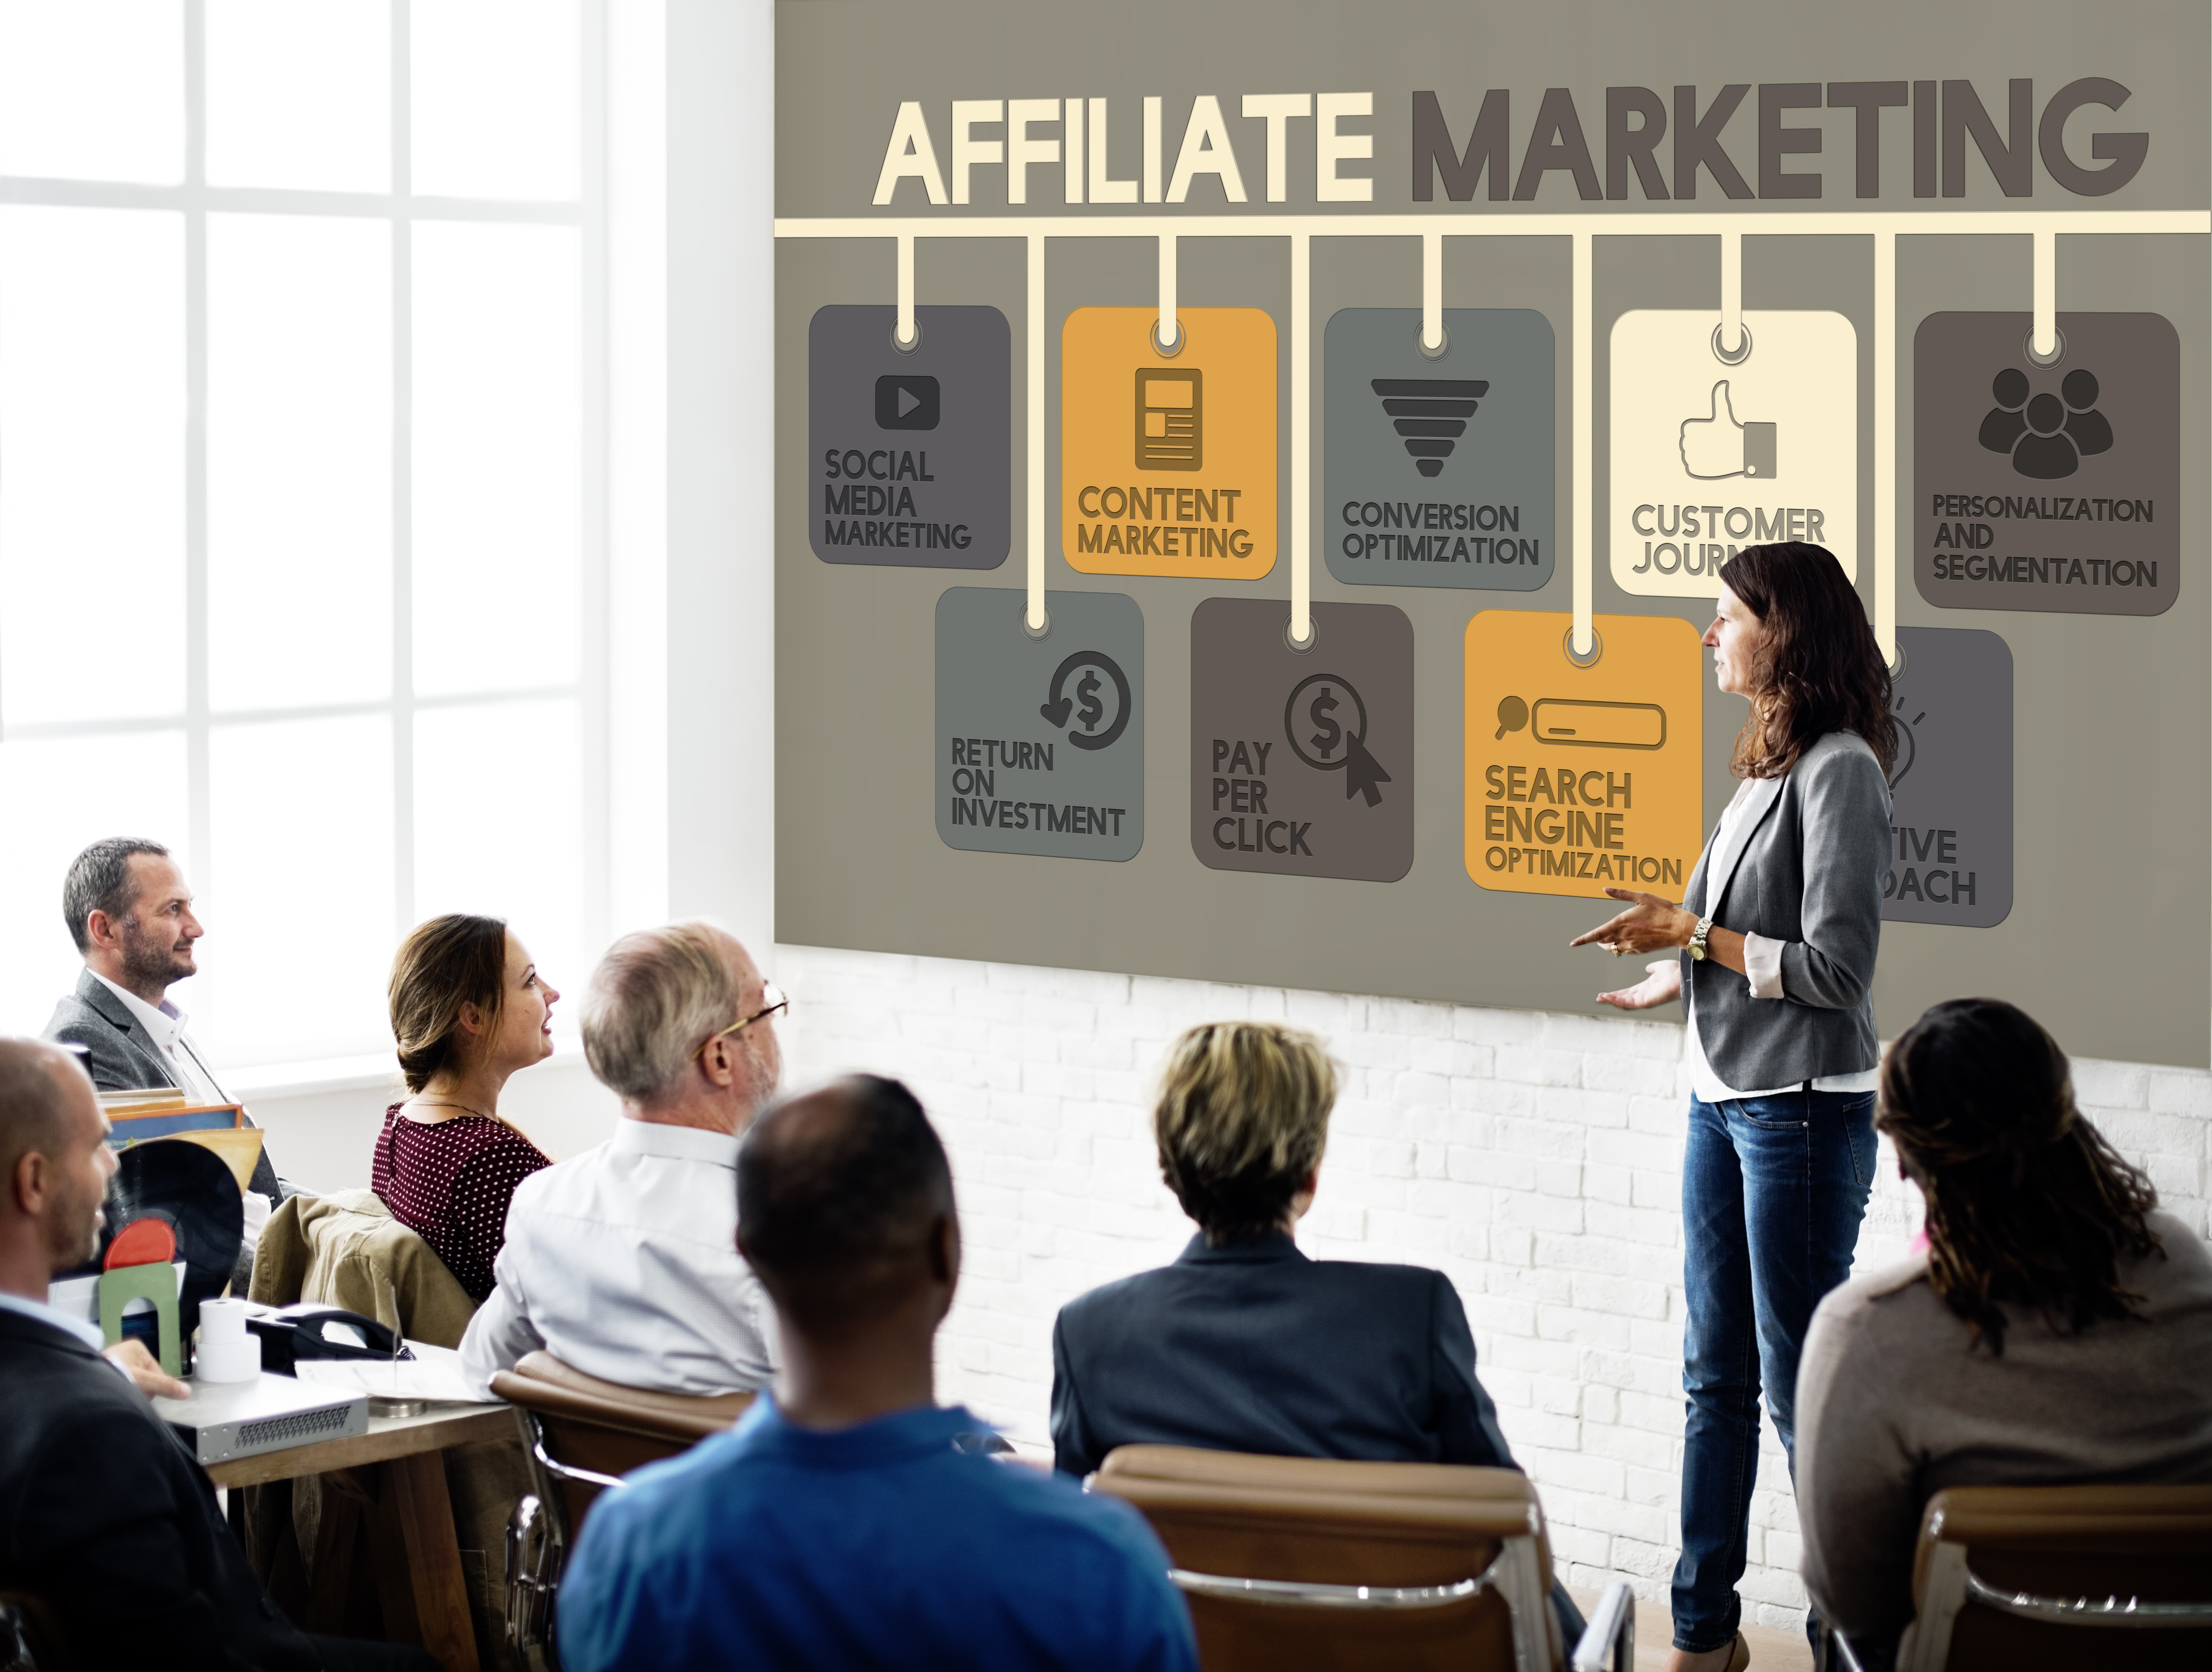 Affiliate Marketing Methods